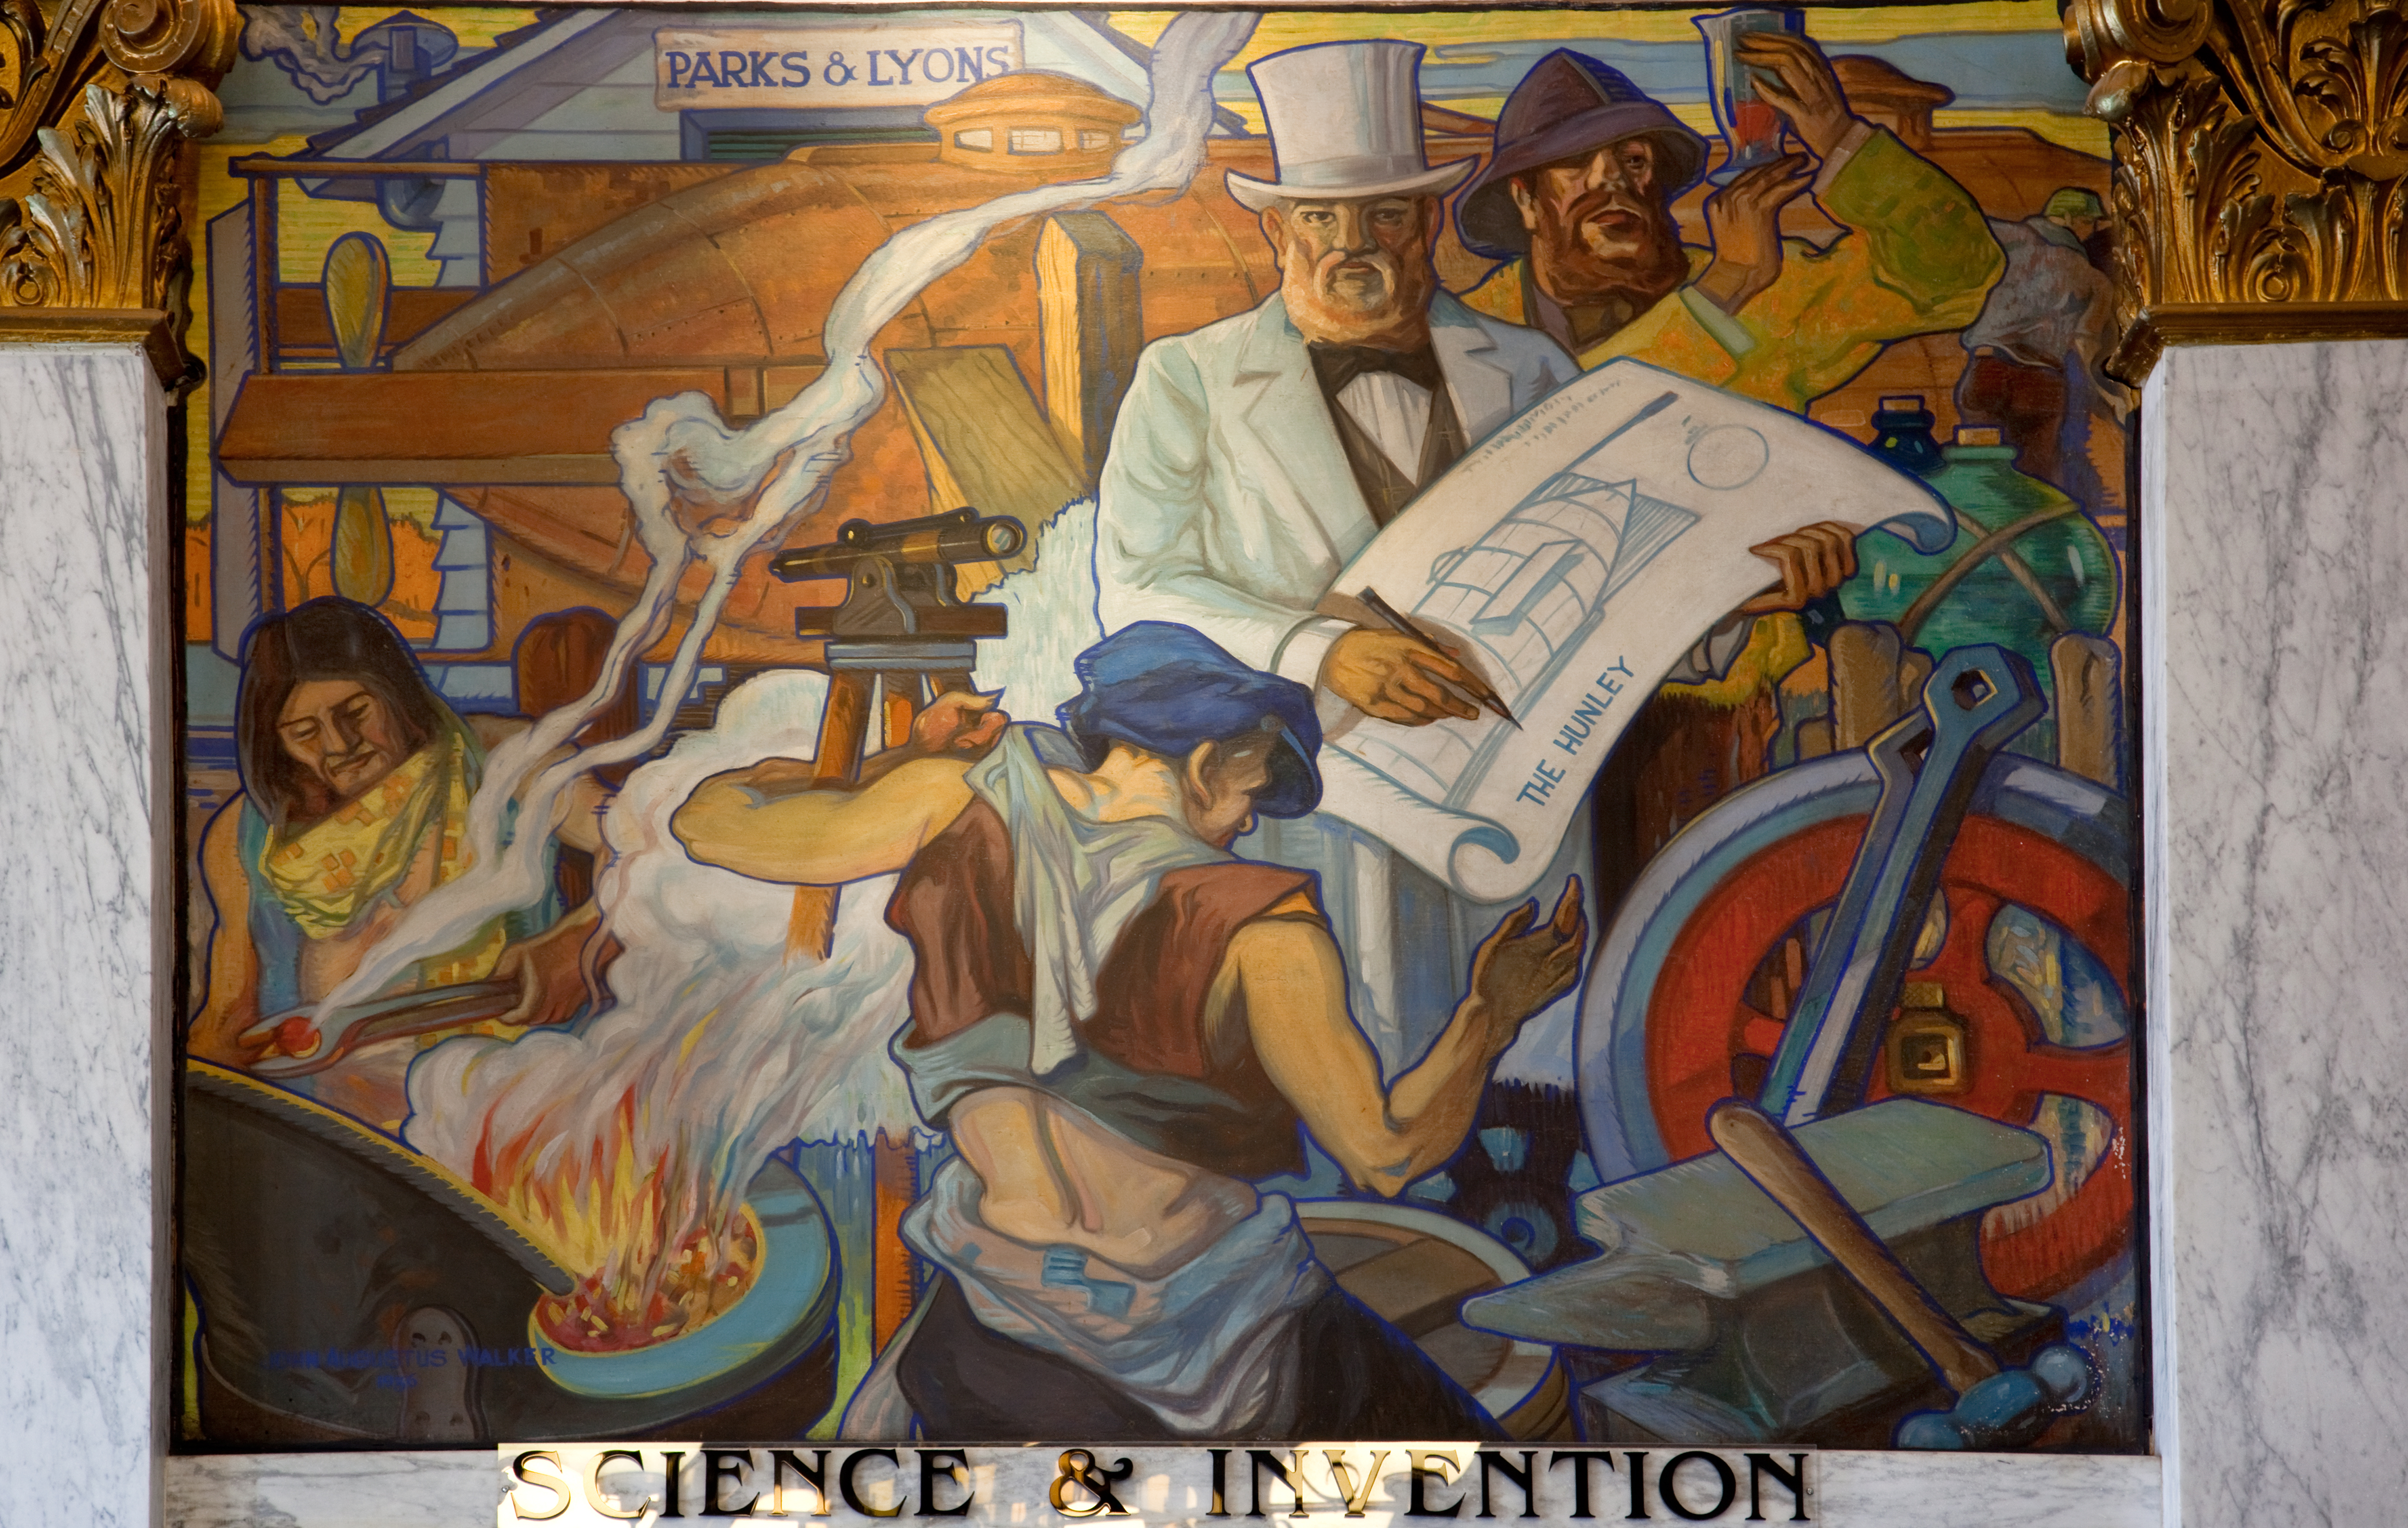 Works progress administration murals for Mural work using m seal